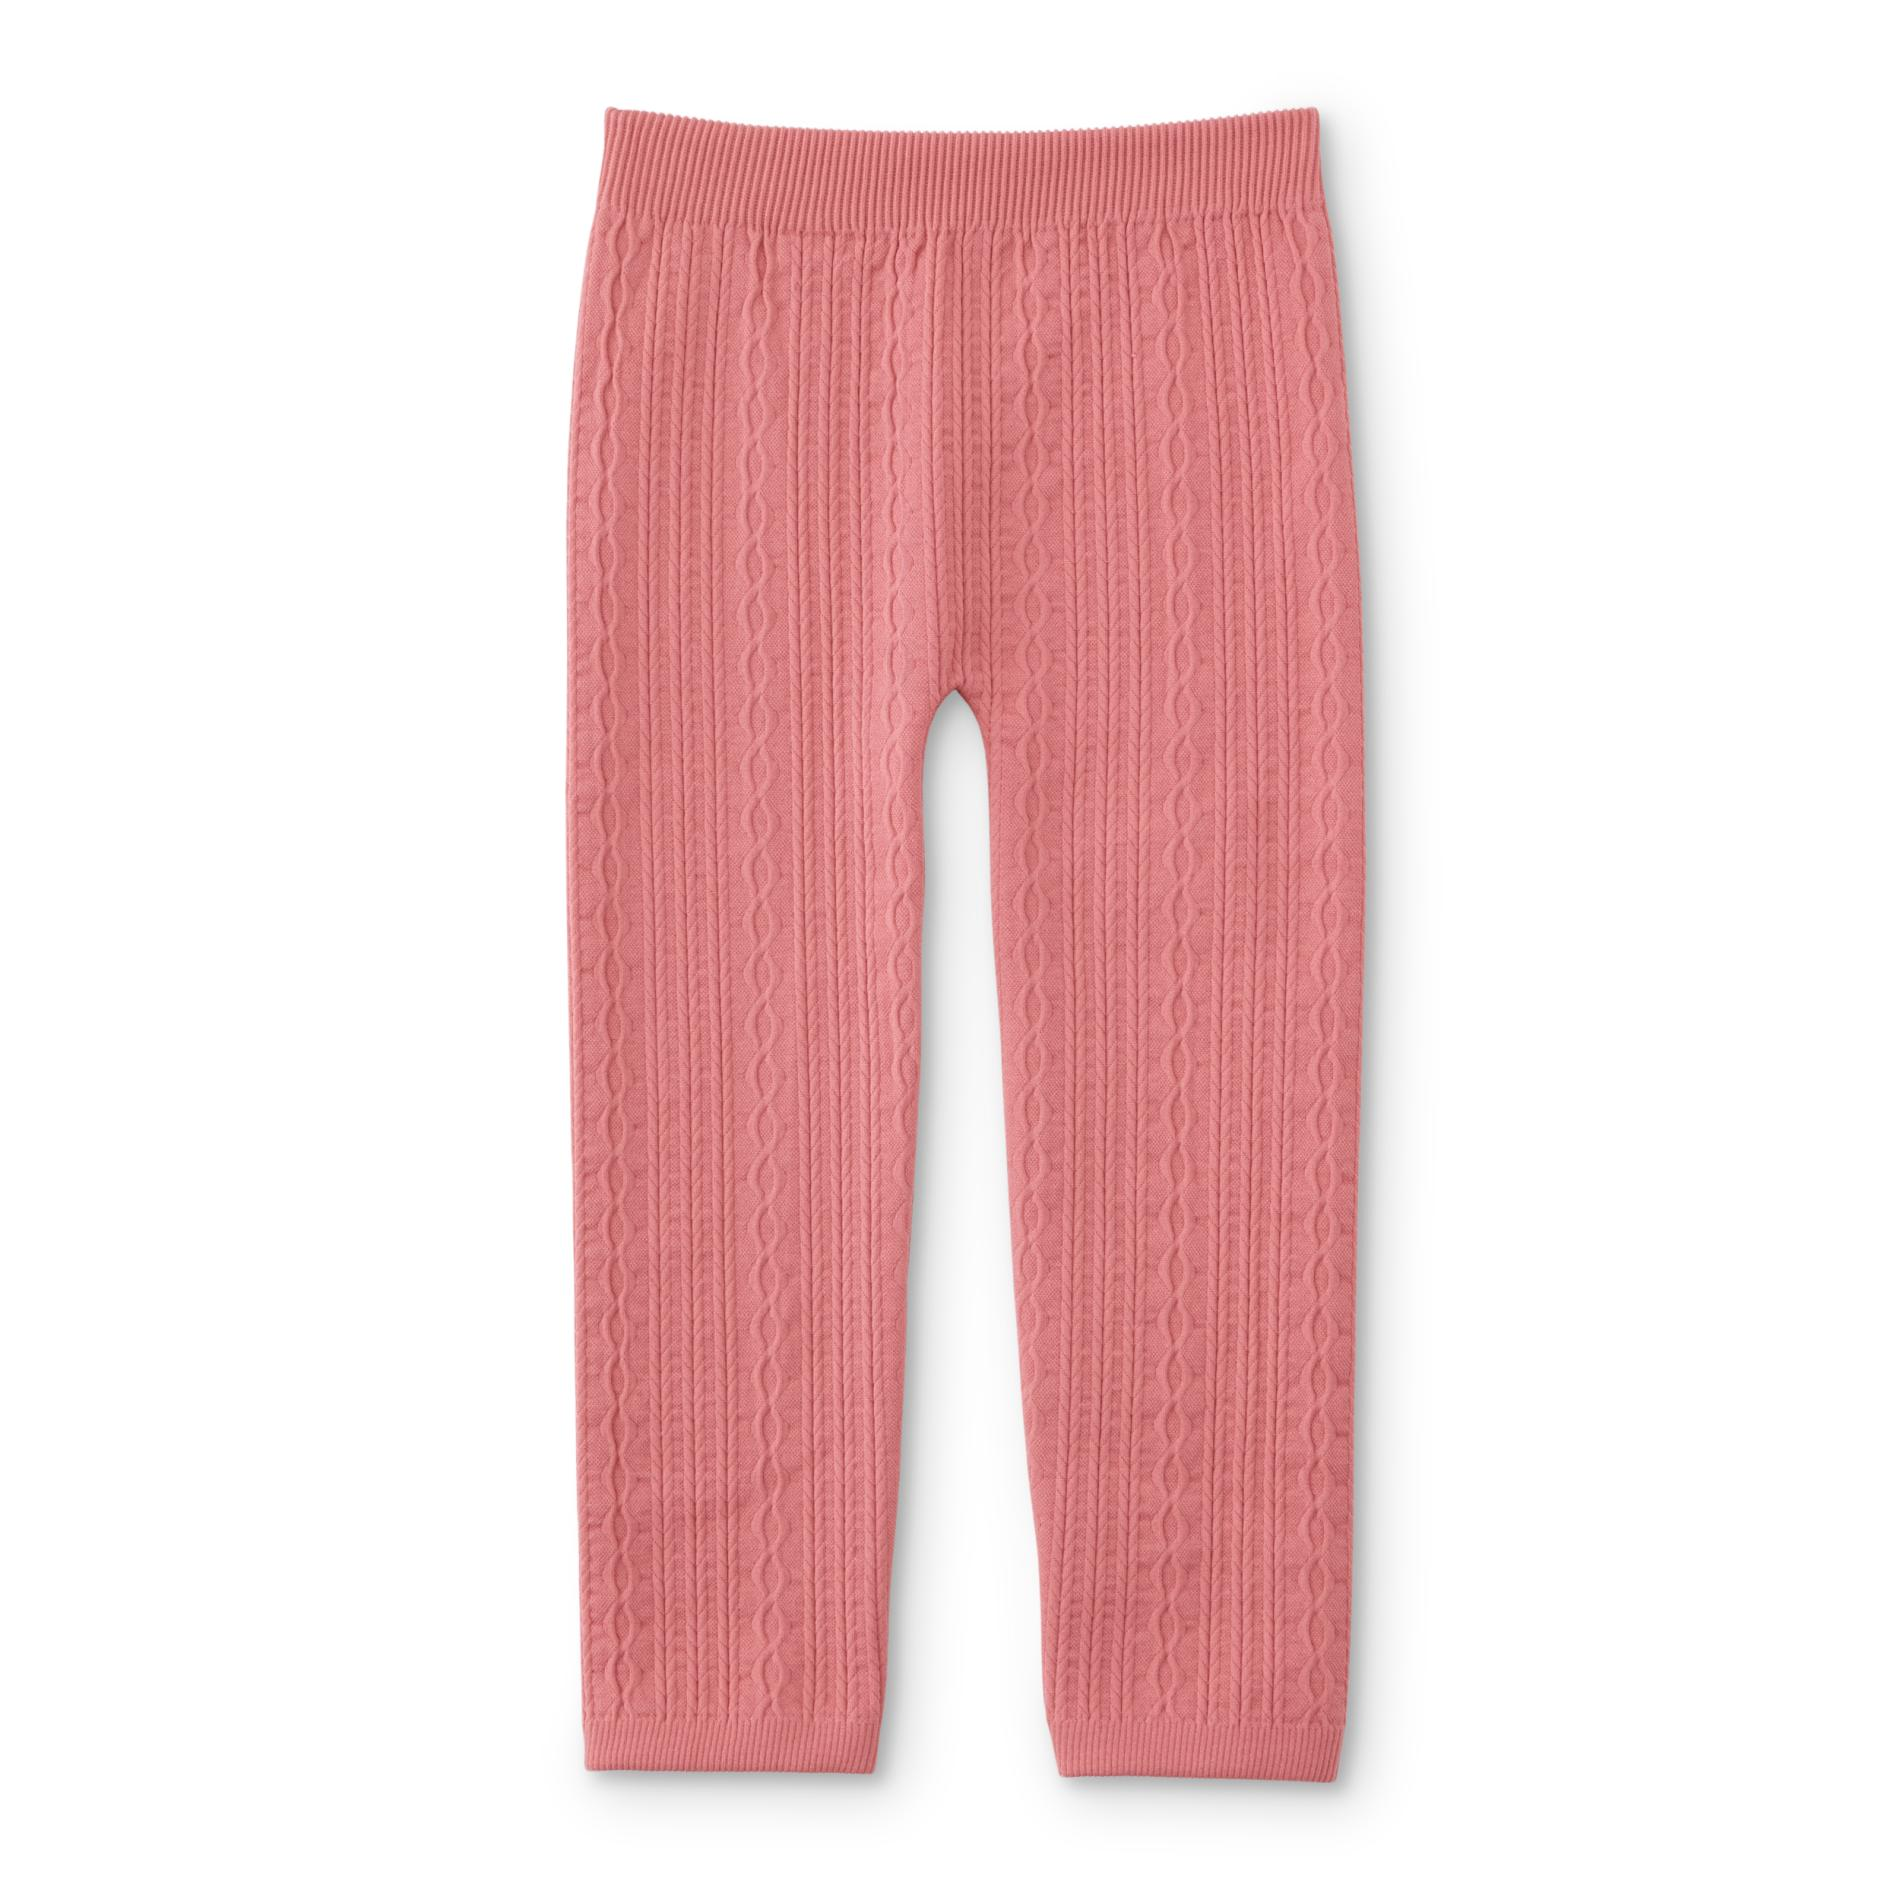 547a3bcc5e854 WonderKids Infant & Toddler Girls' Cable Knit Leggings